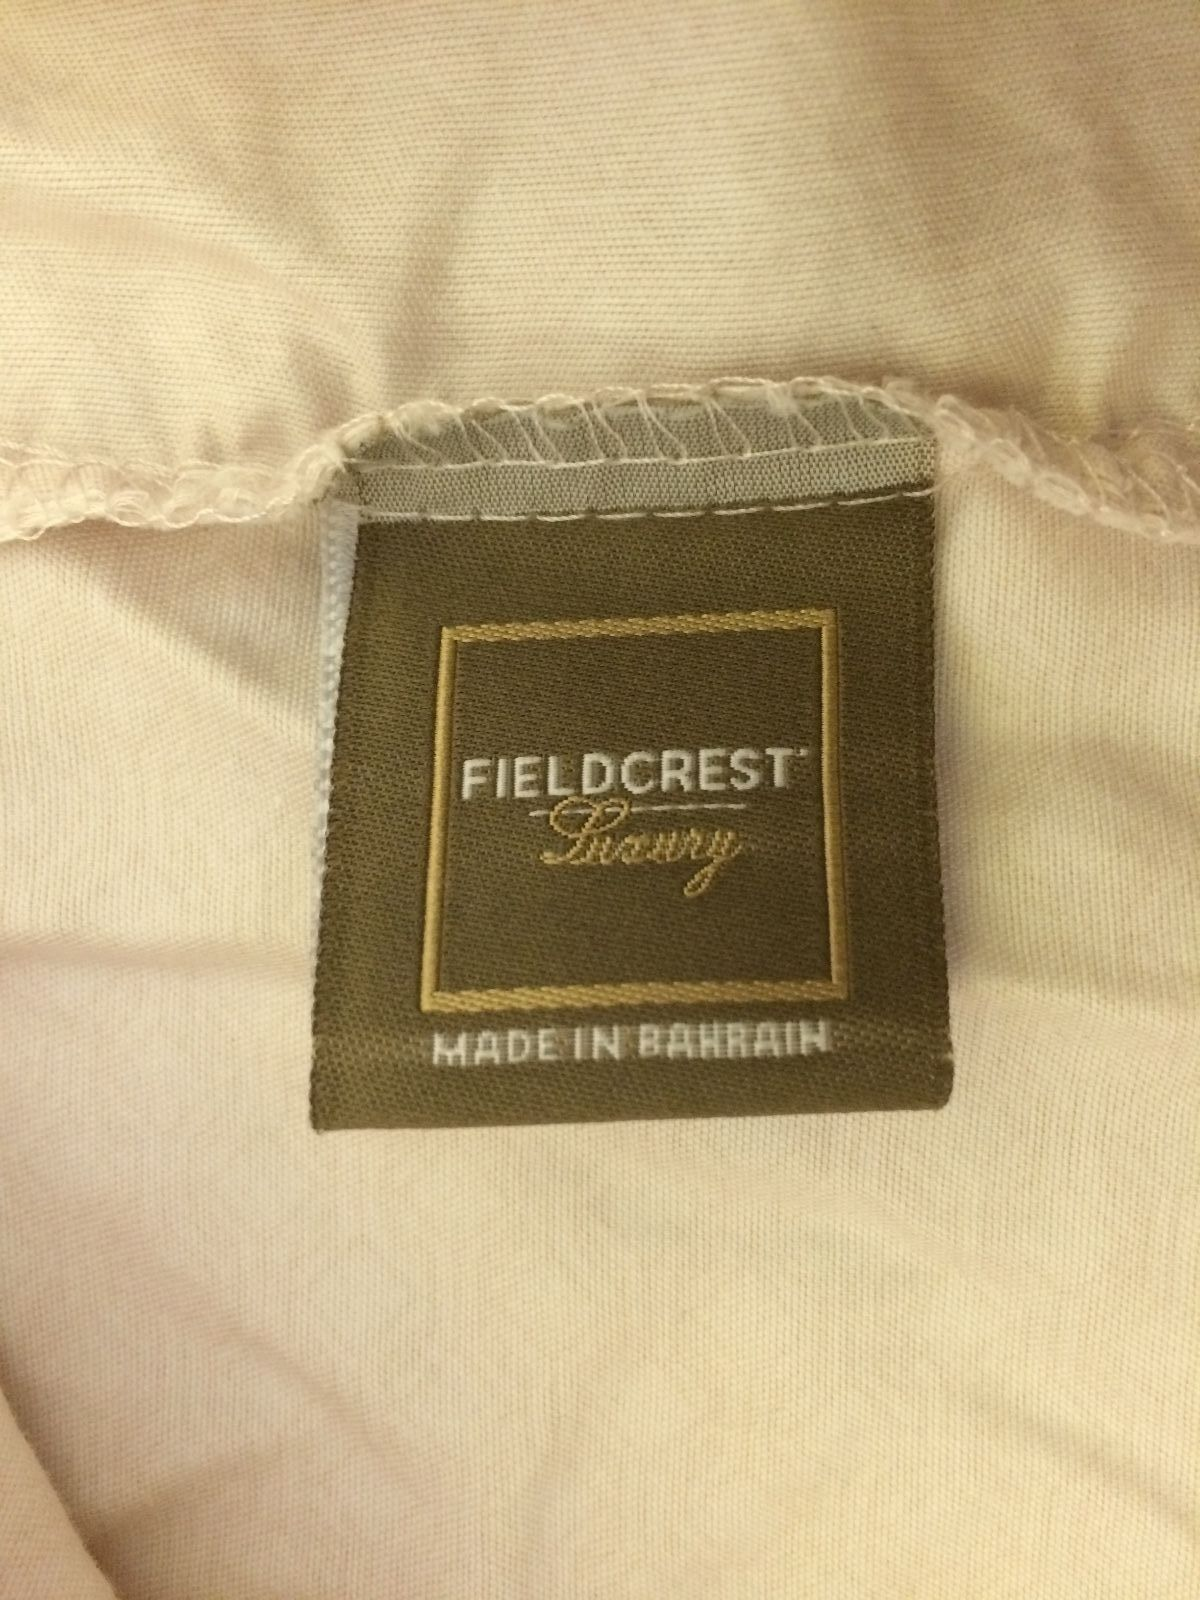 Fieldcrest Quilts | Fieldcrest Luxury Sheets | Fieldcrest Luxury Bath Sheet